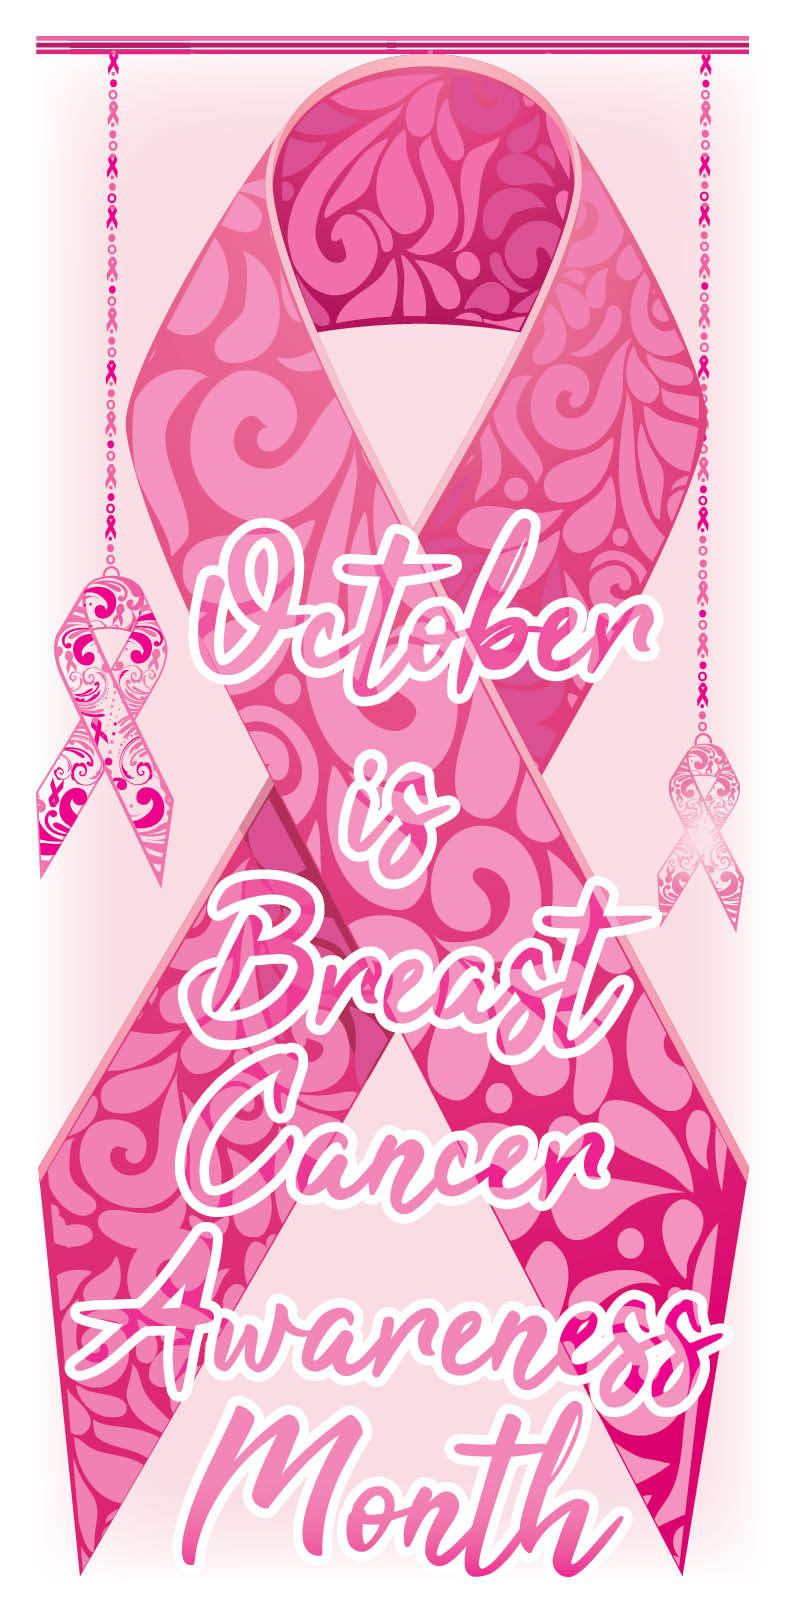 2019 Breast Cancer Awareness Month Sidney Daily News